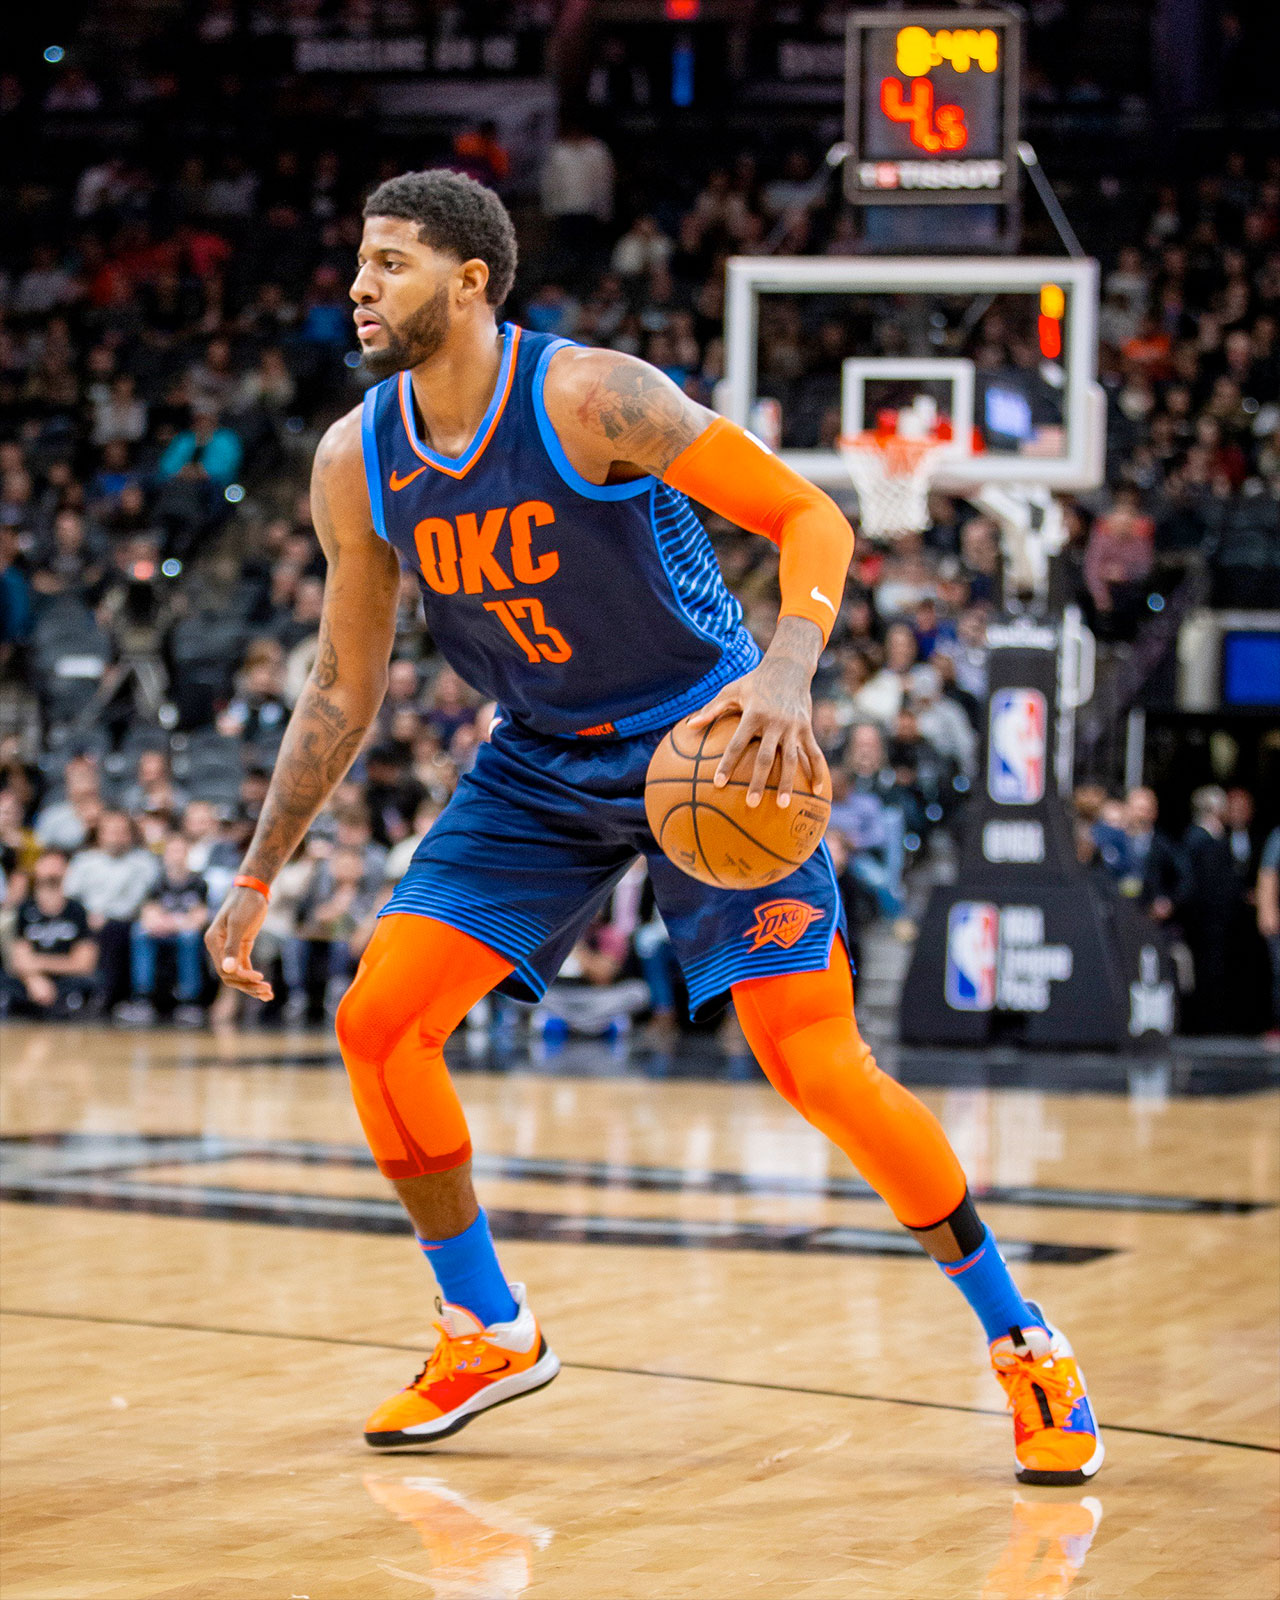 Oklahoma City Thunder small forward Paul George debuted his PG 3 X NASA  sneakers on the court on Jan. 10 3af3b677788d